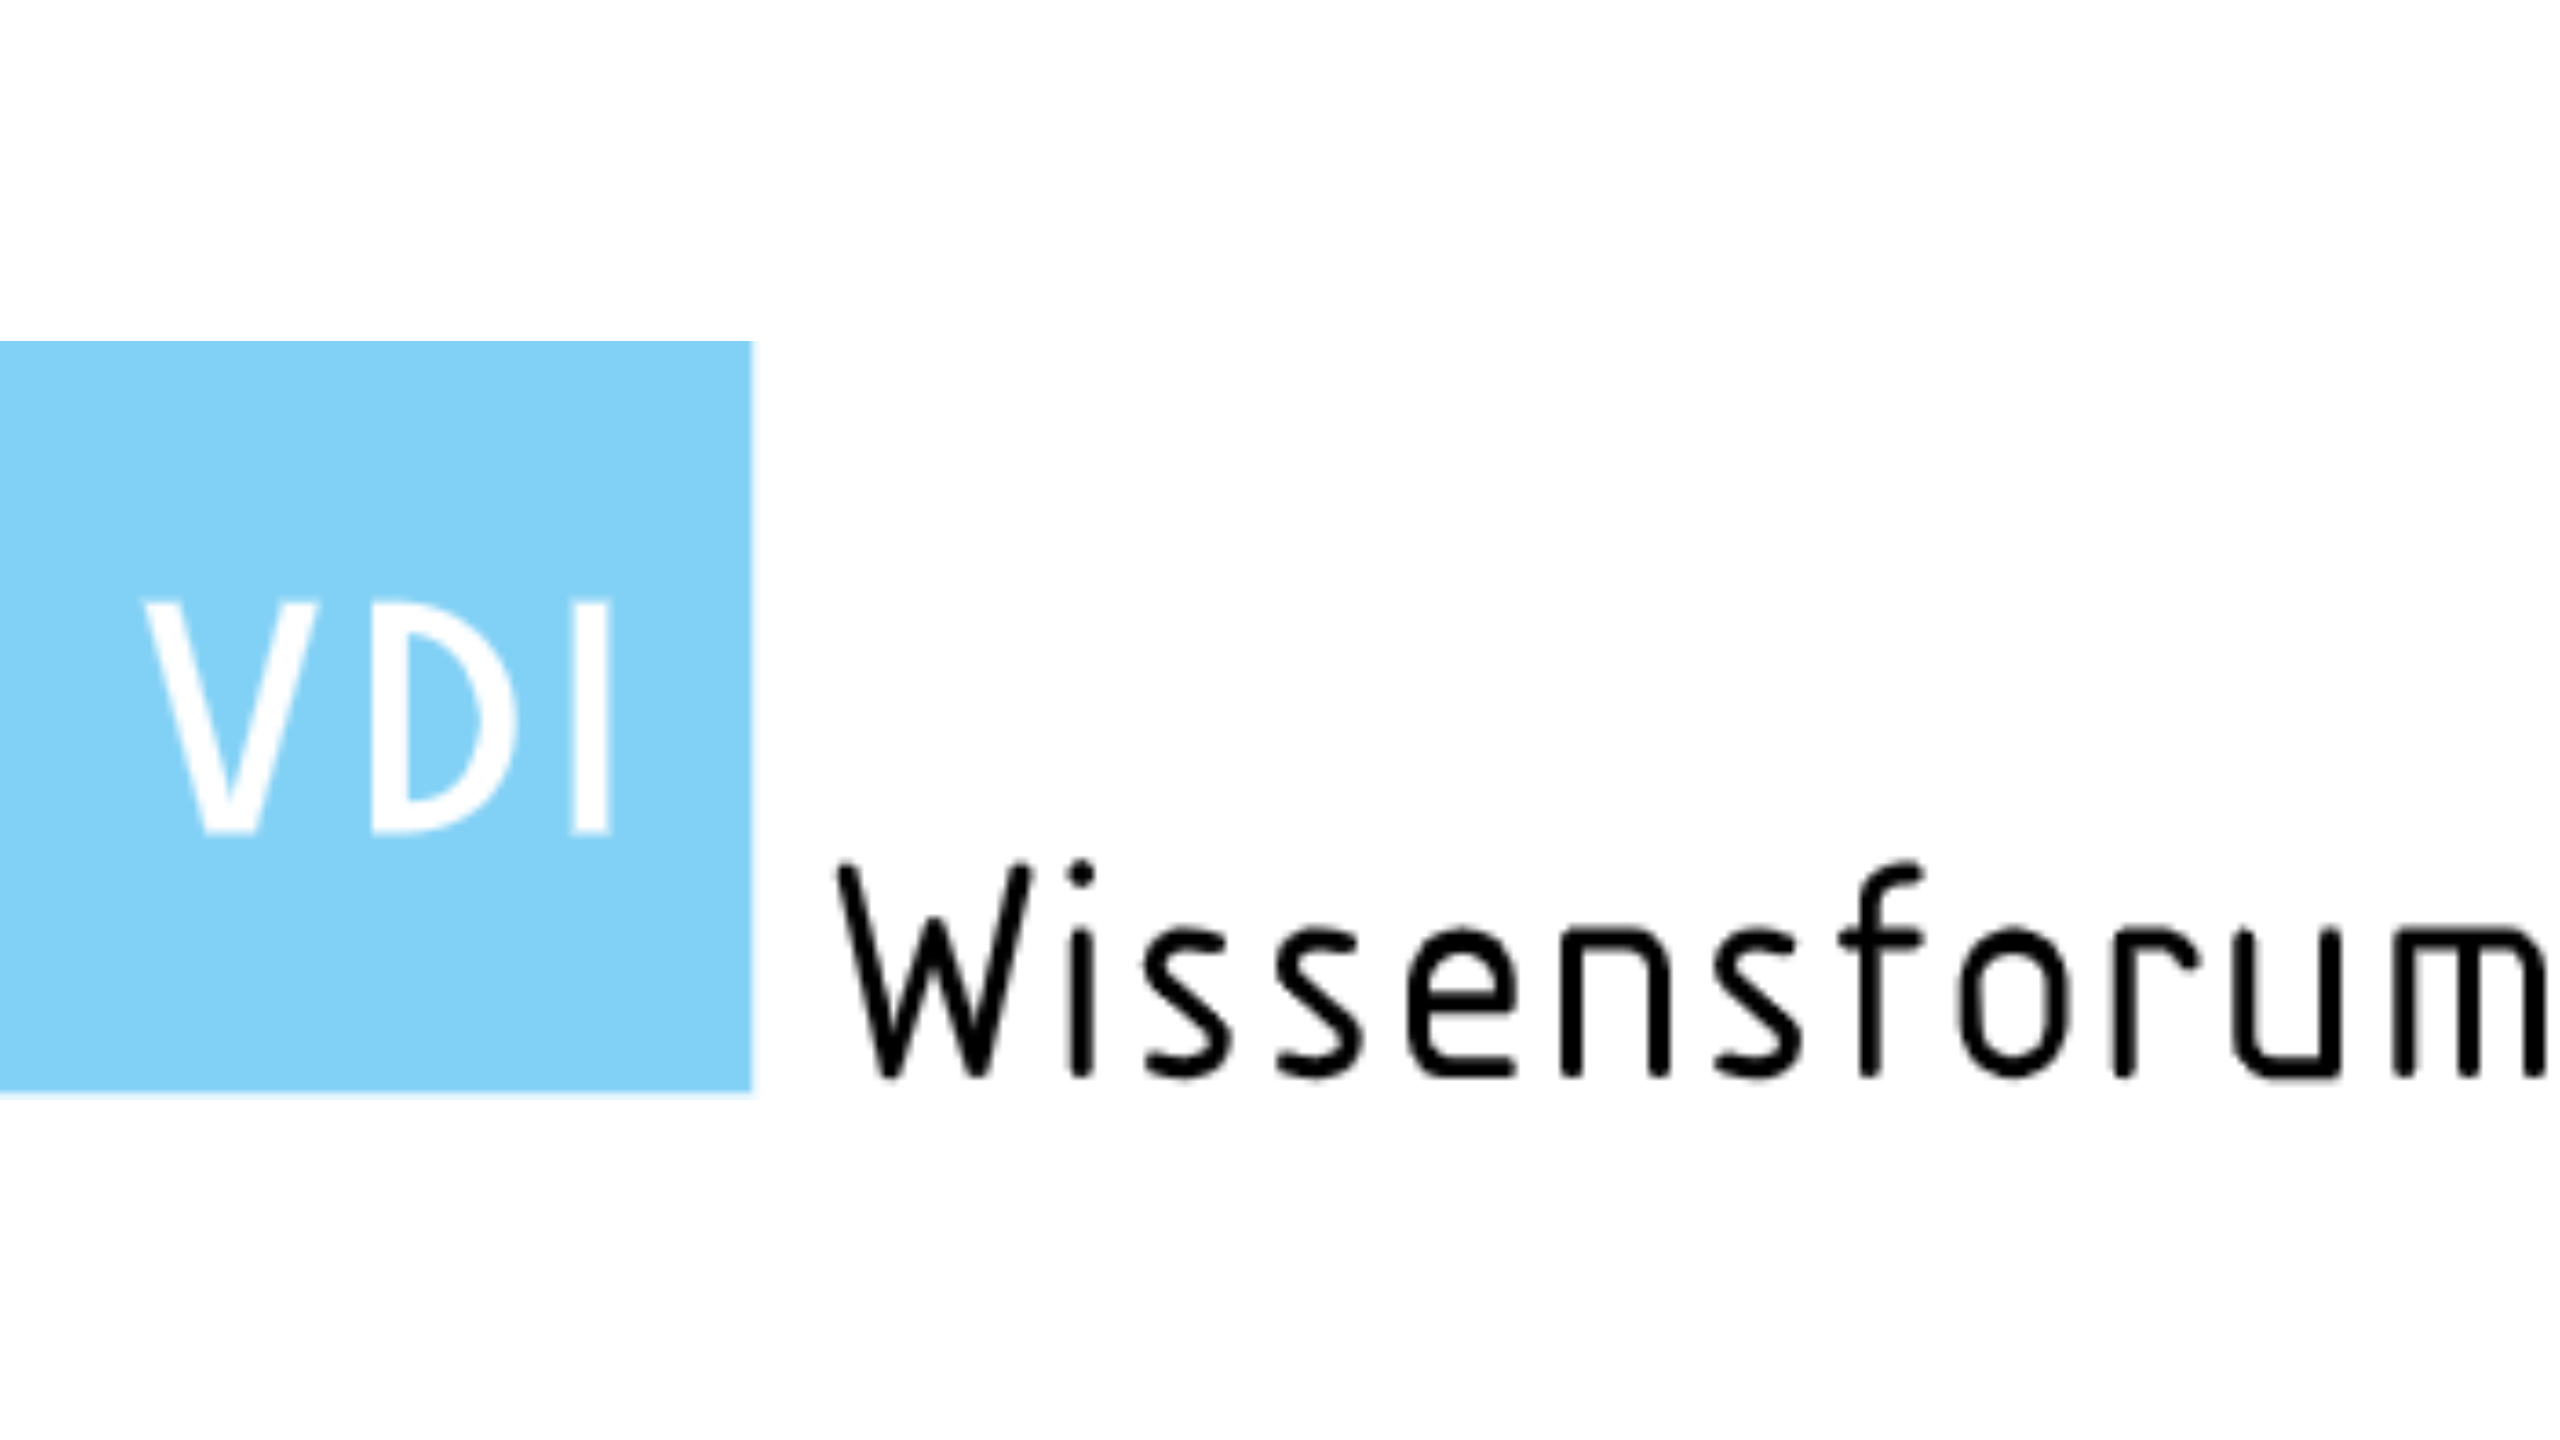 events vdi wissensforum logo 16 9